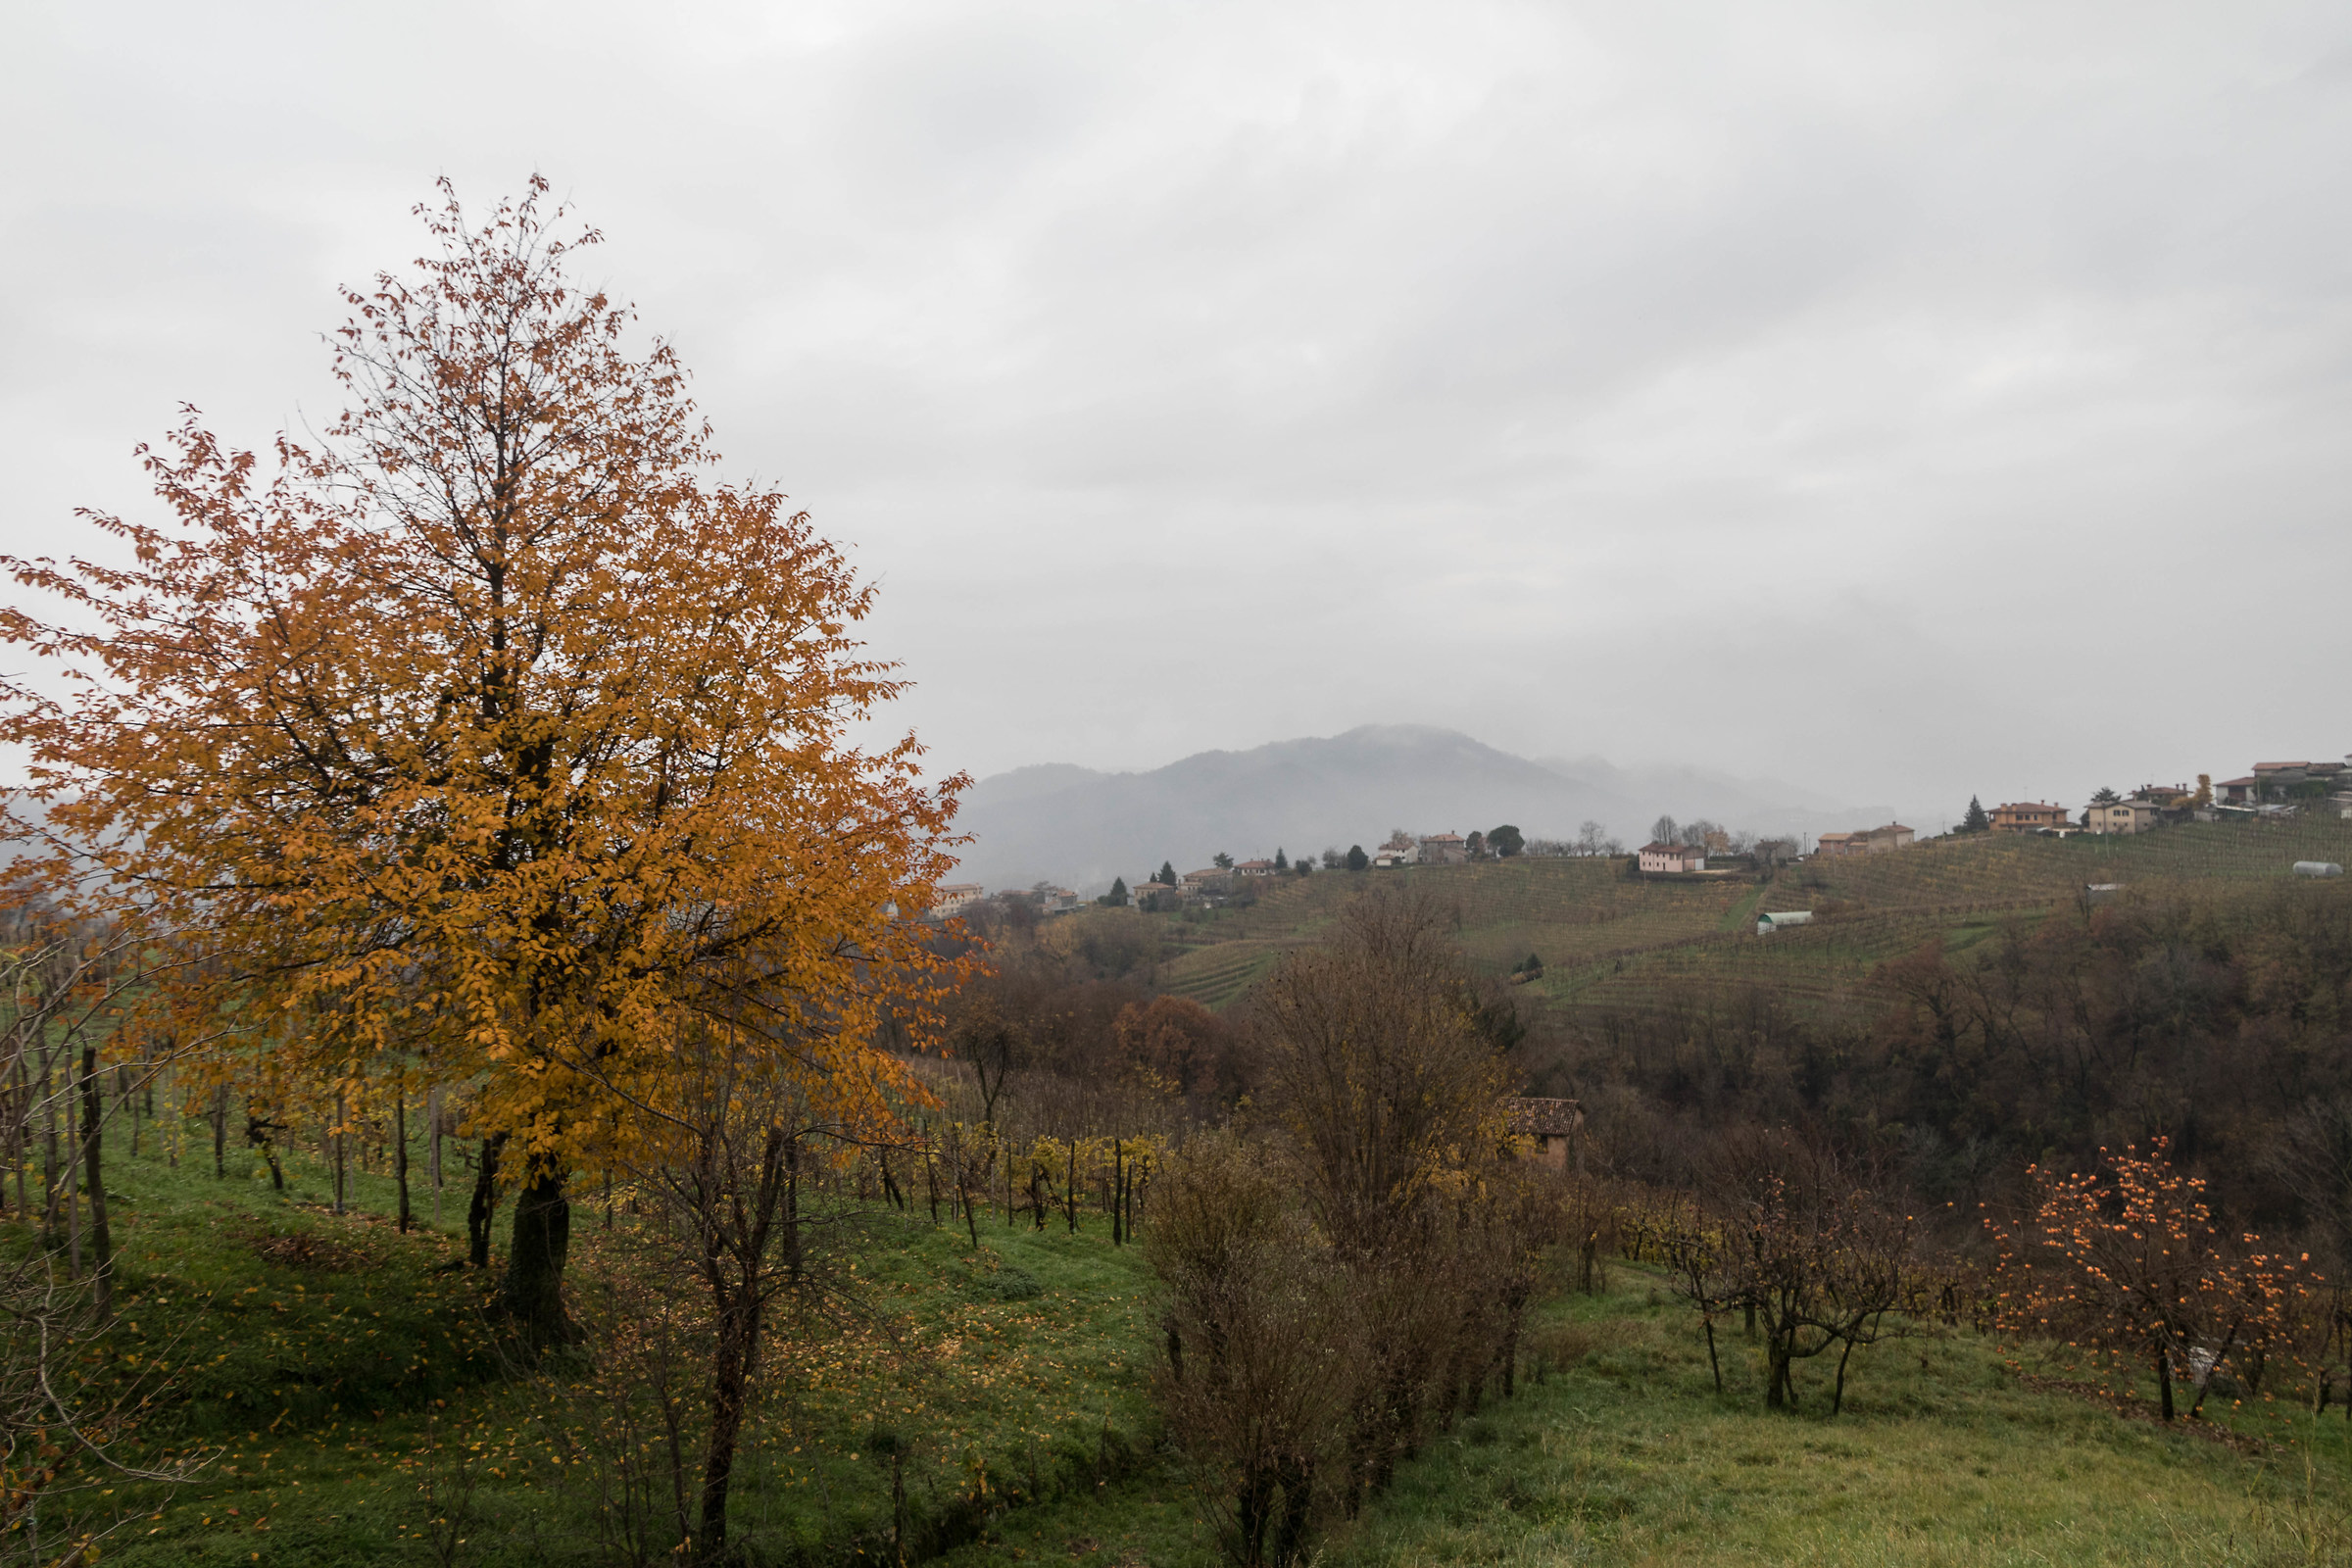 The hills of Prosecco...